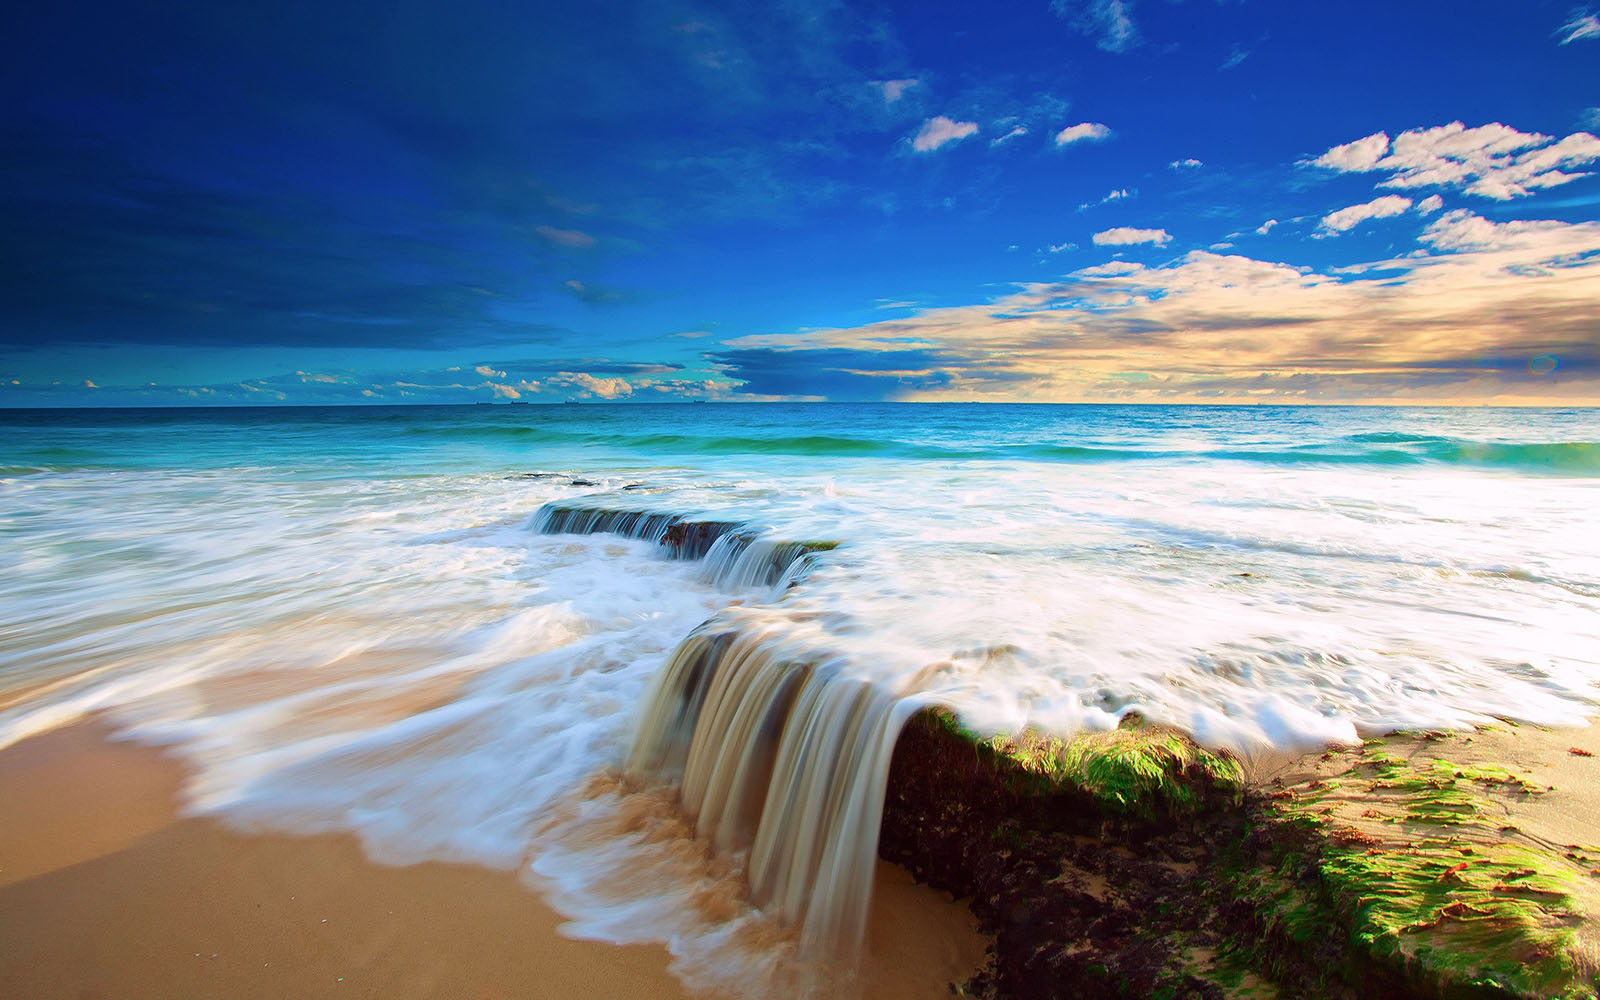 Awesome beach wallpaper and photography